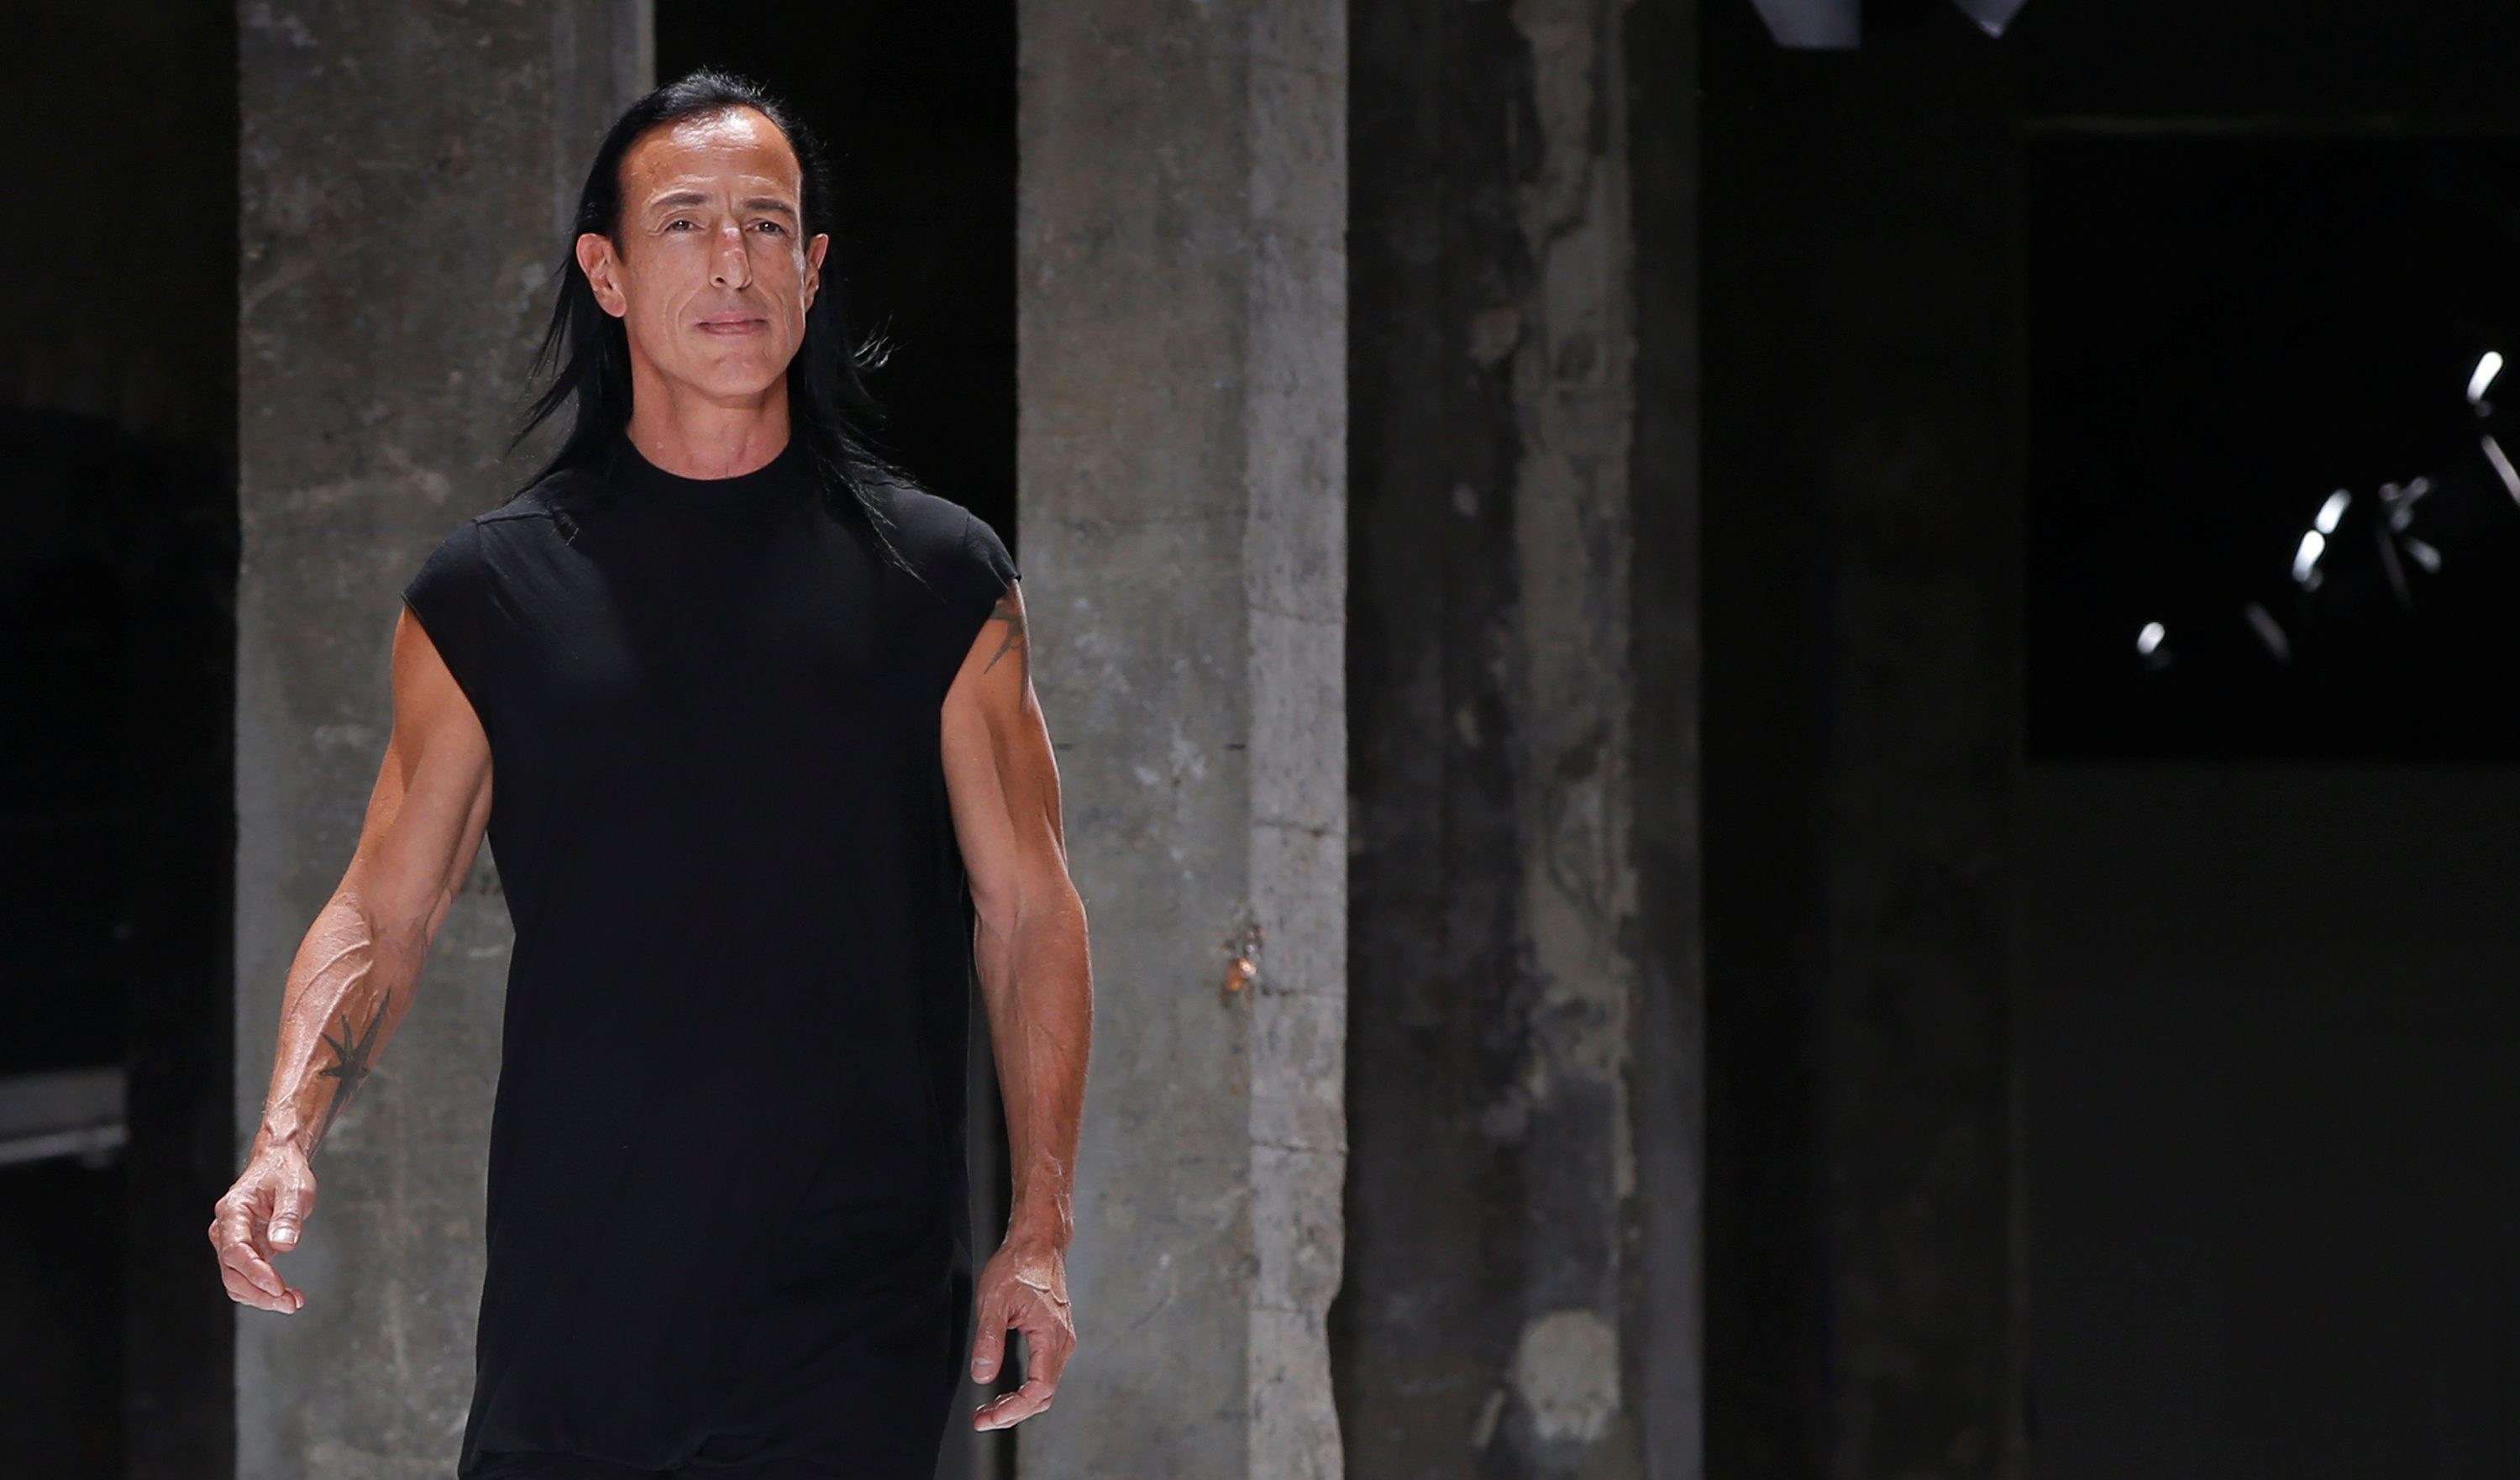 U.S. designer Rick Owens appears at the end of his Spring/Summer 2017 women's ready-to-wear collection during Fashion Week in Paris, France September 29, 2016. REUTERS/Gonzalo Fuentes - D1BEUEDAEEAB